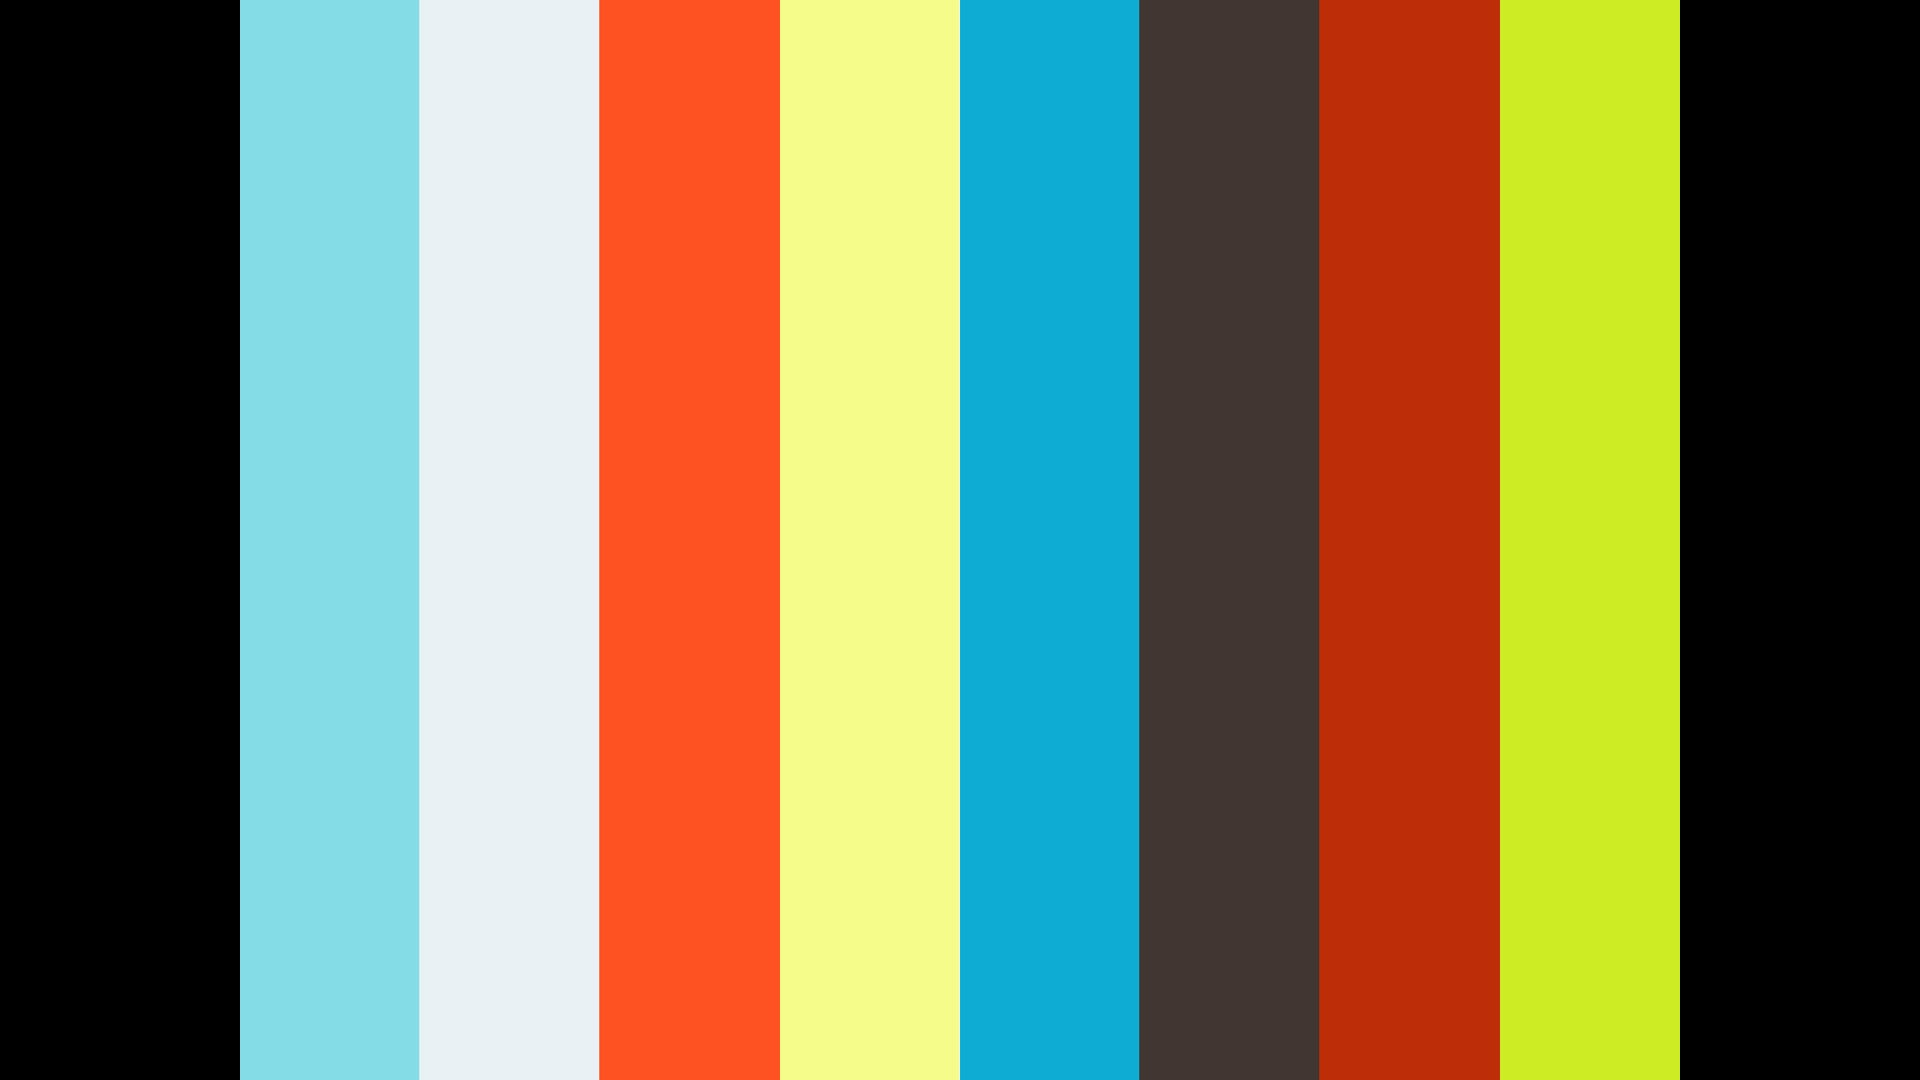 MSc Sustainable Development - Short